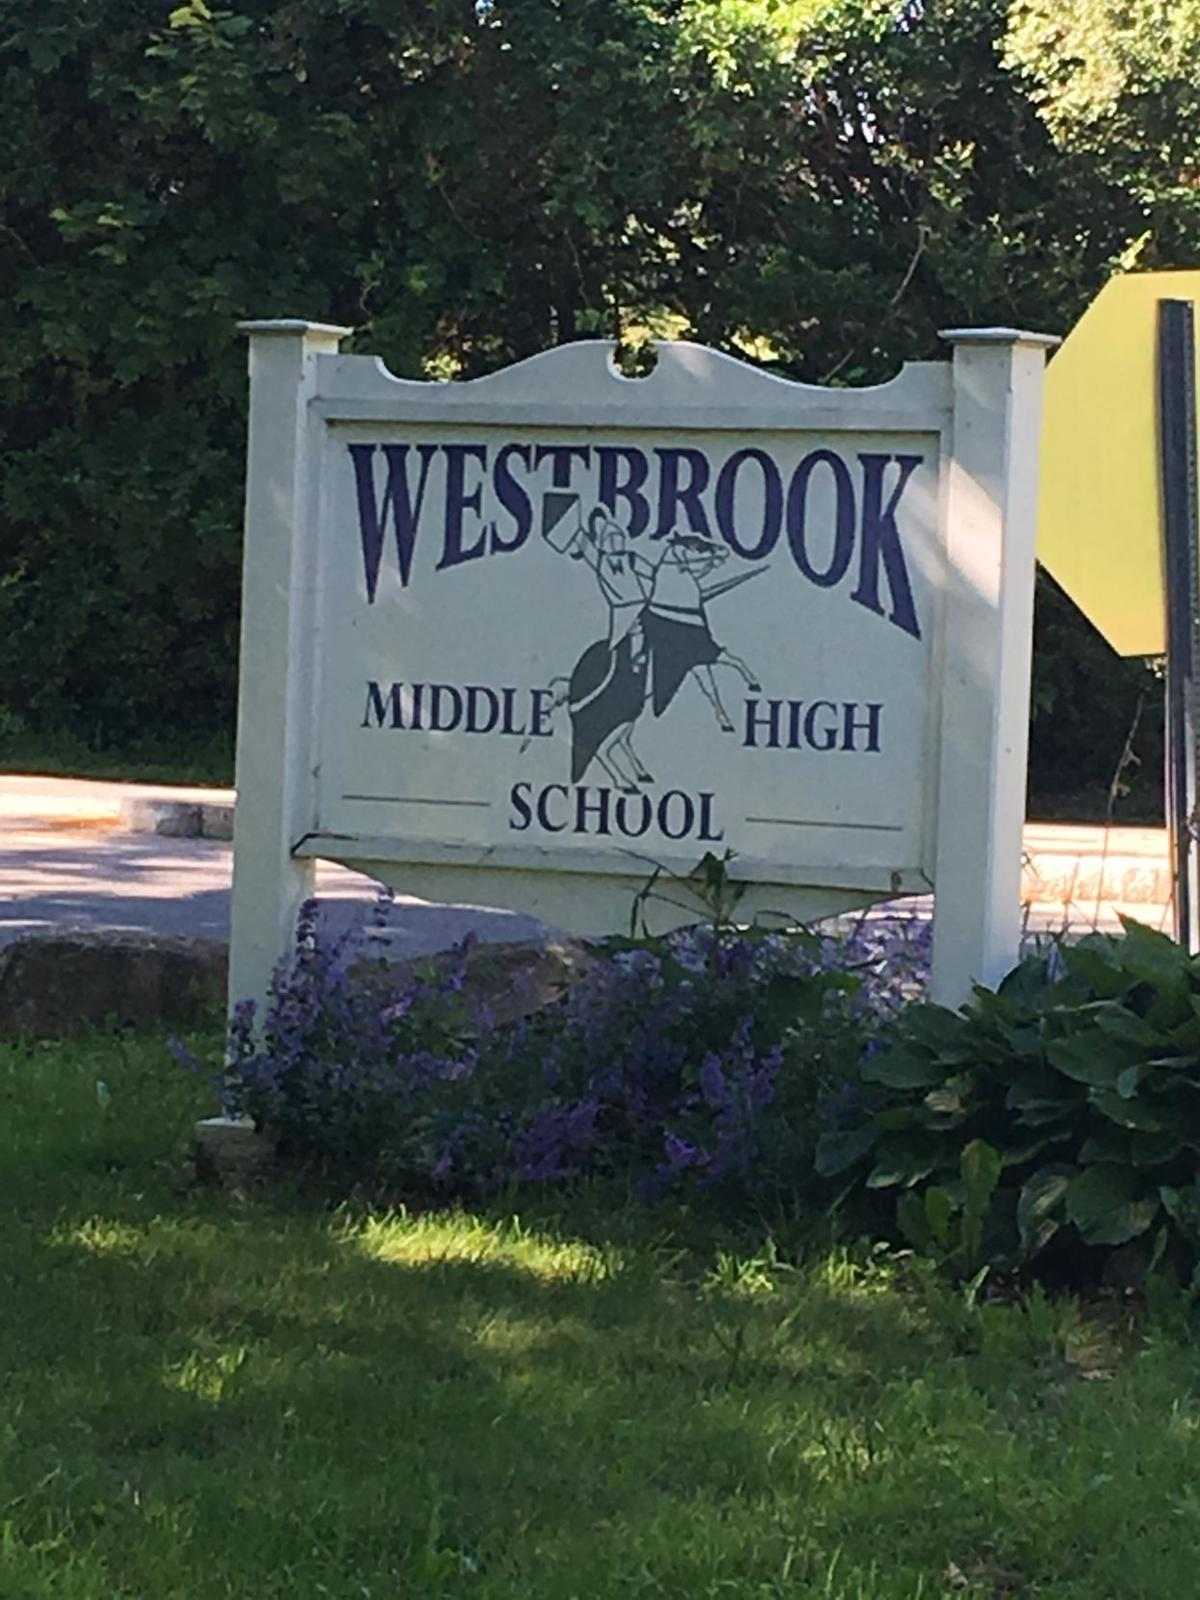 Westbrook students barred from graduation after prank at high school